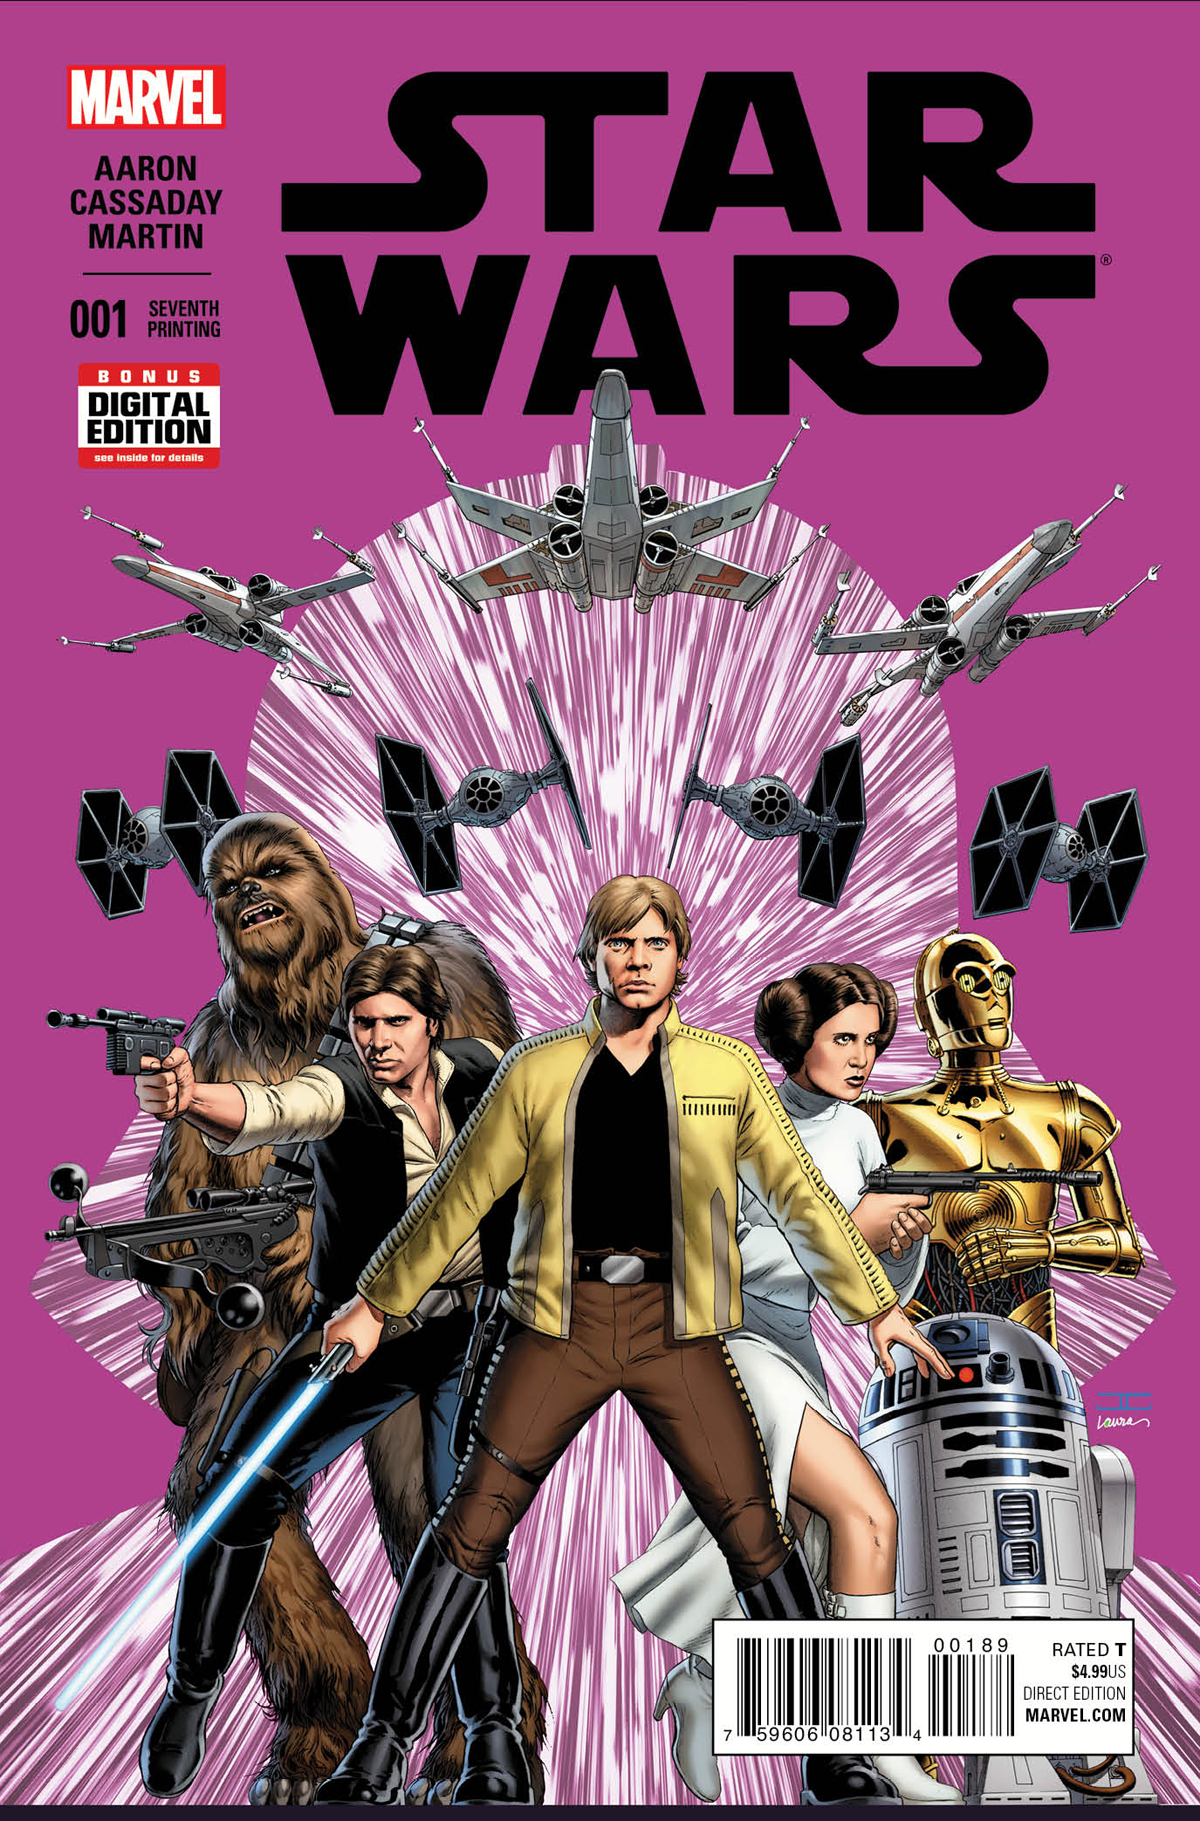 STAR WARS #1 CASSADAY 7TH PTG VAR